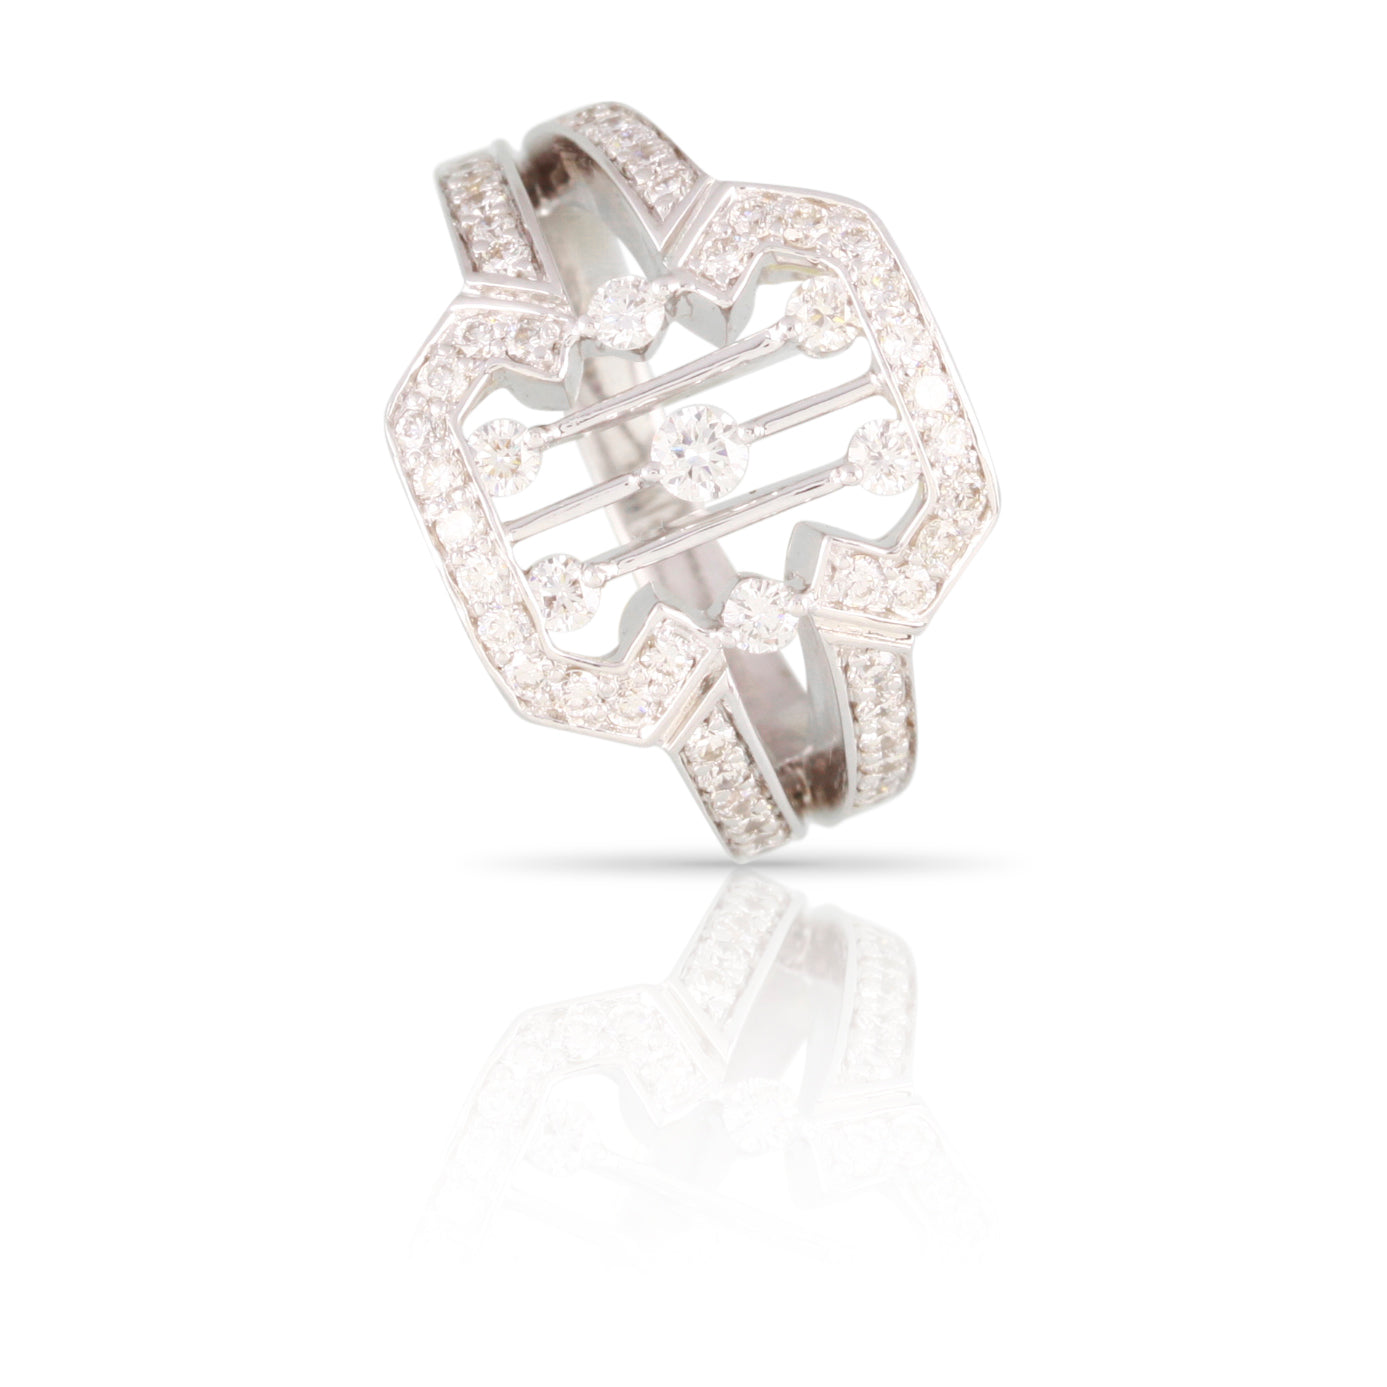 Pave Diamond Ring | The Barney